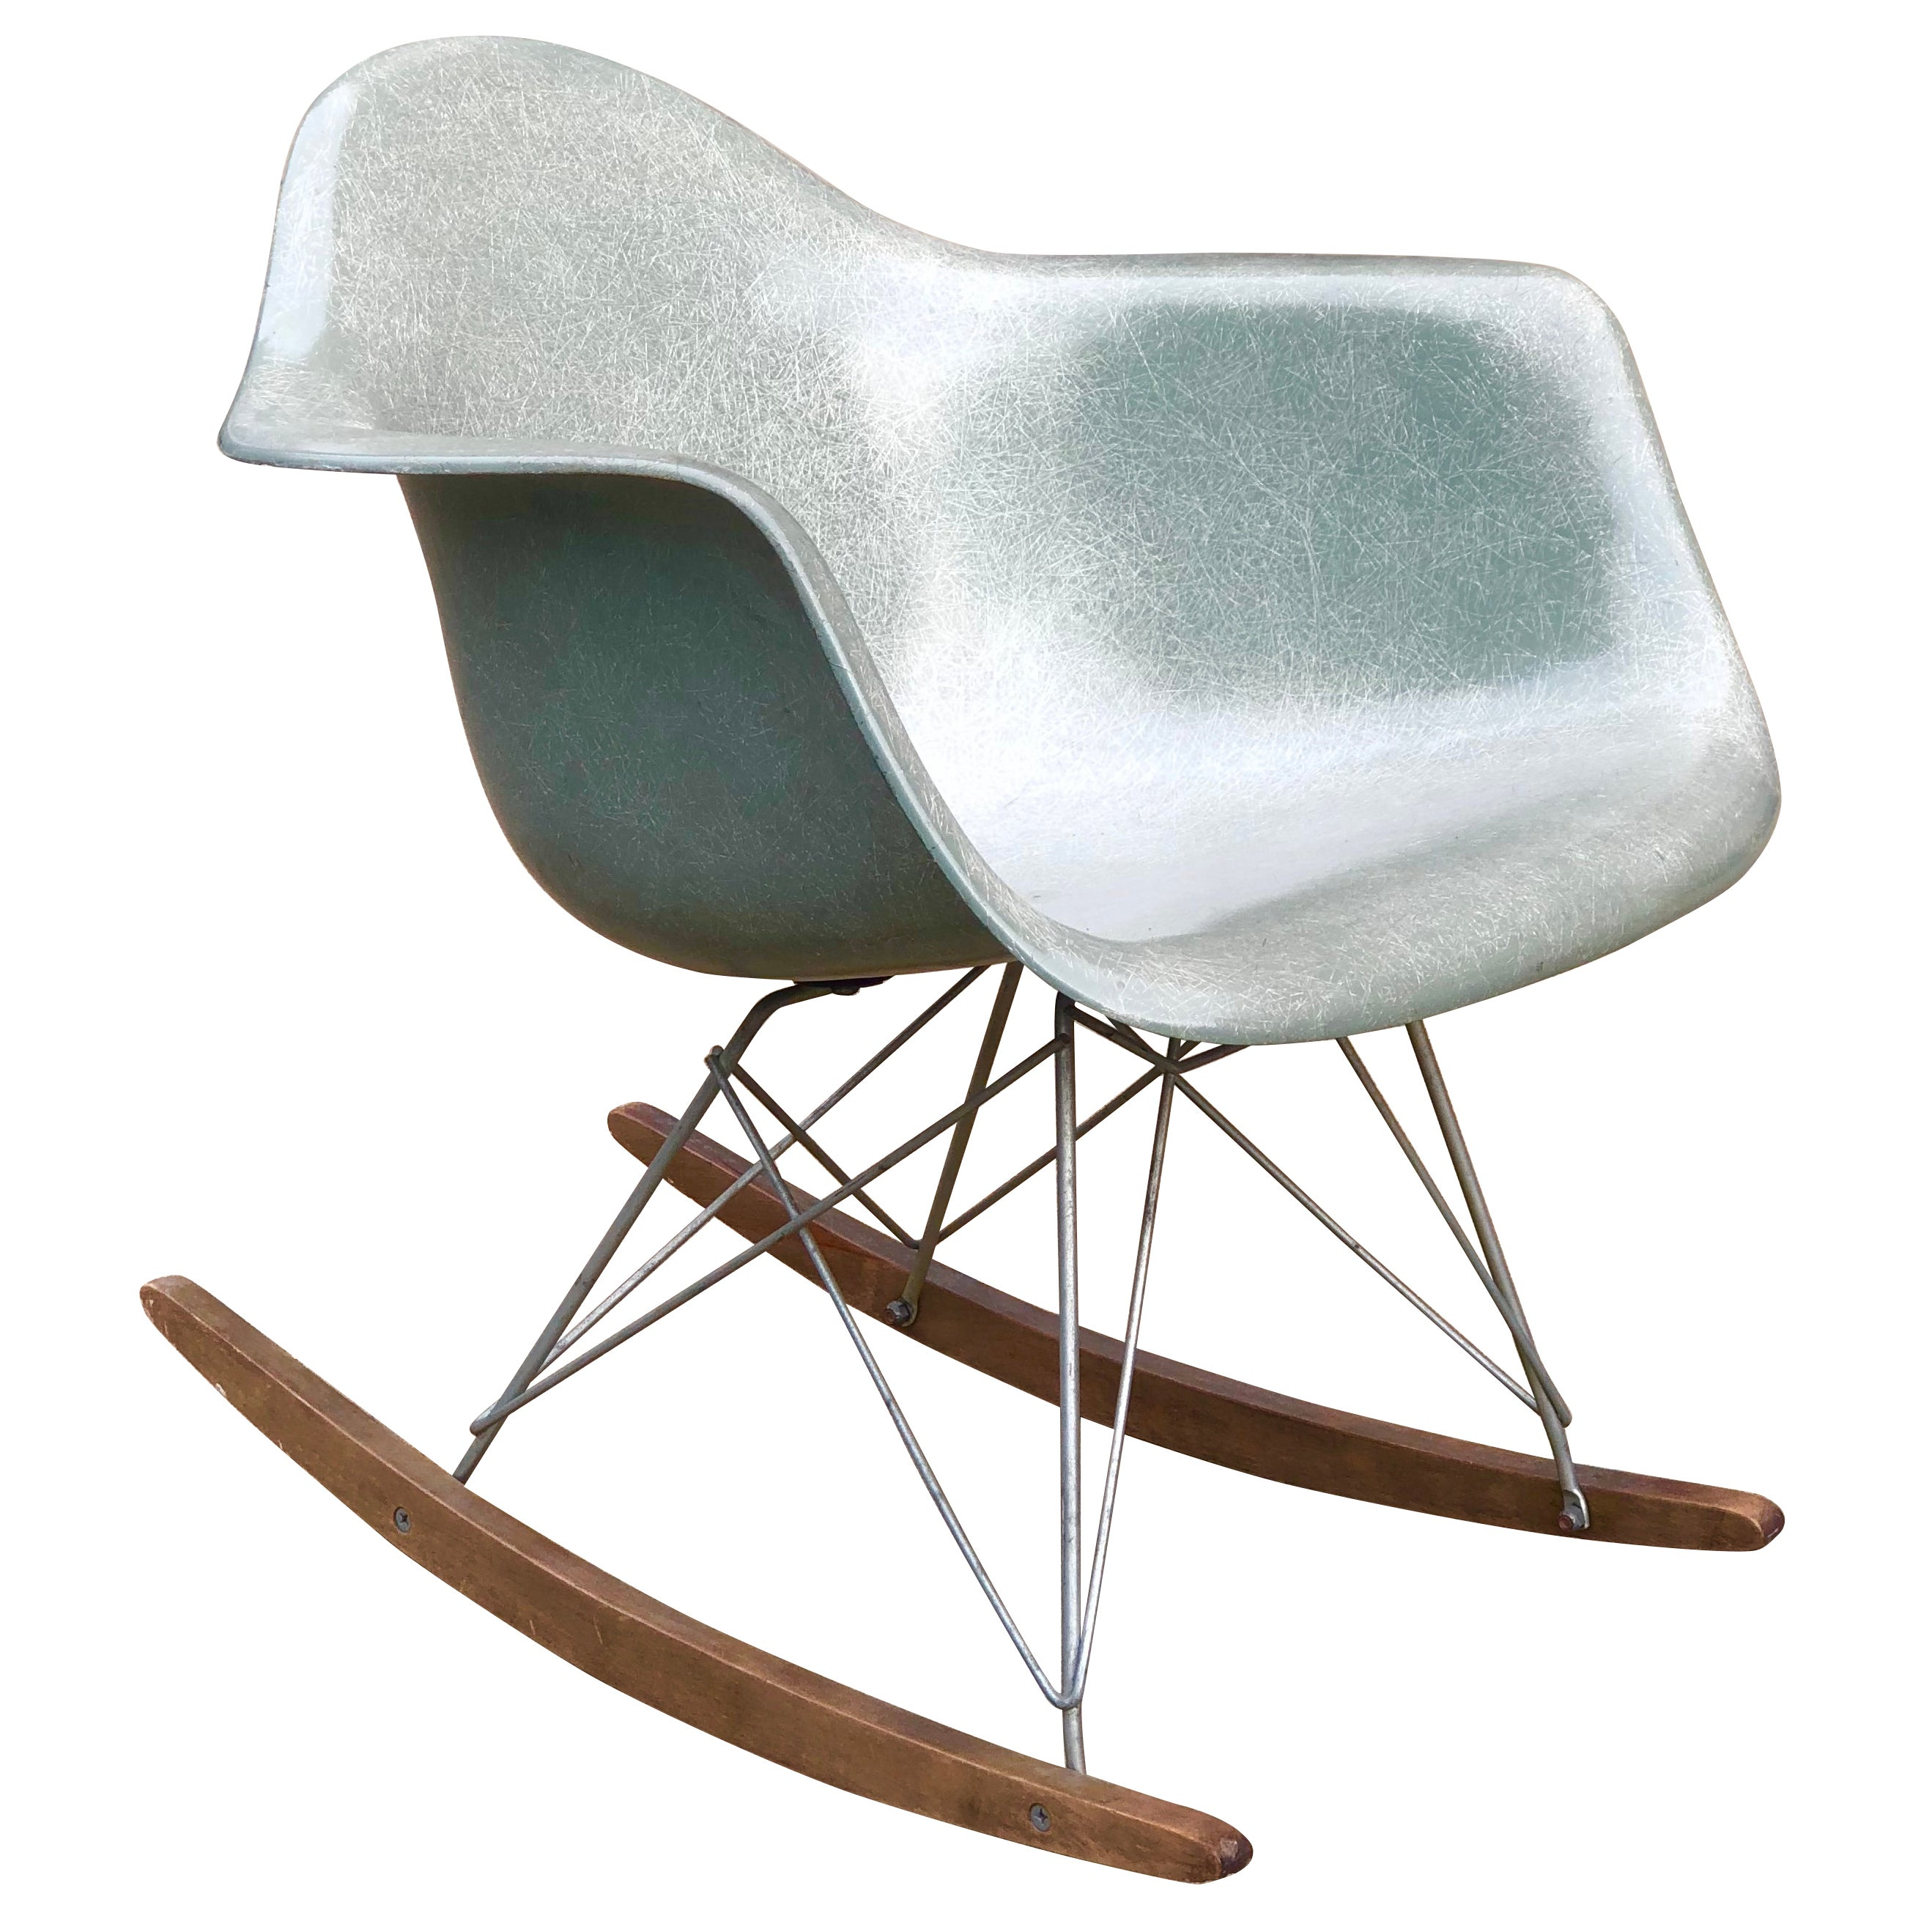 Eames Rar Herman Miller Eames Rar Rocking Chair In Seafoam Green